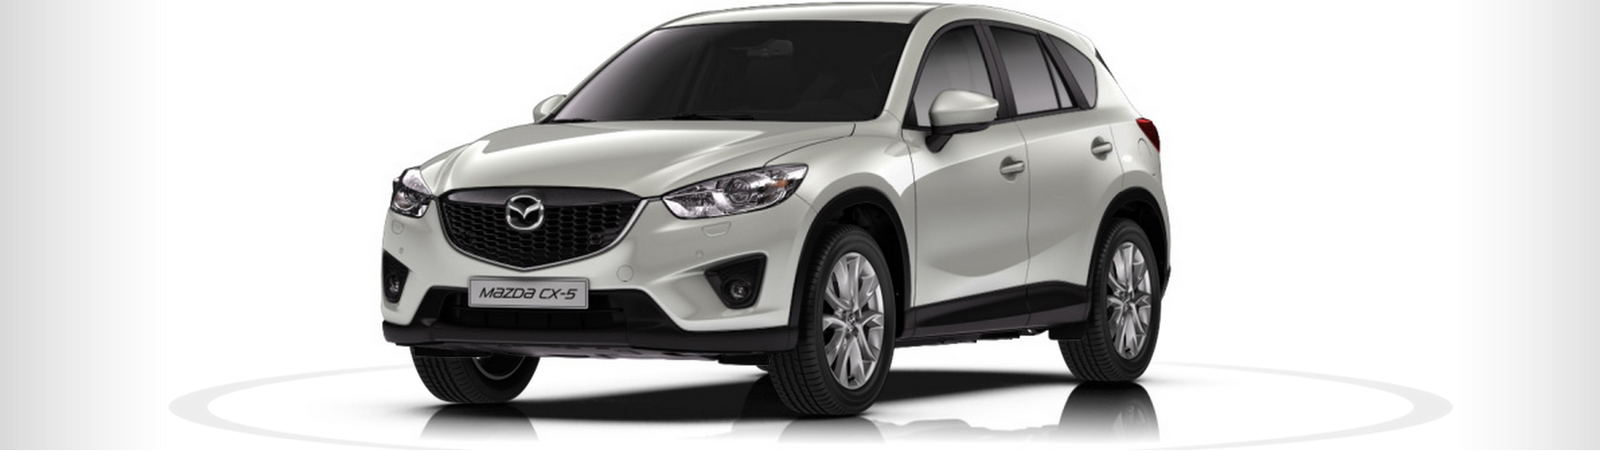 2015 Mazda Cx 5 Colour Guide And Prices Carwow